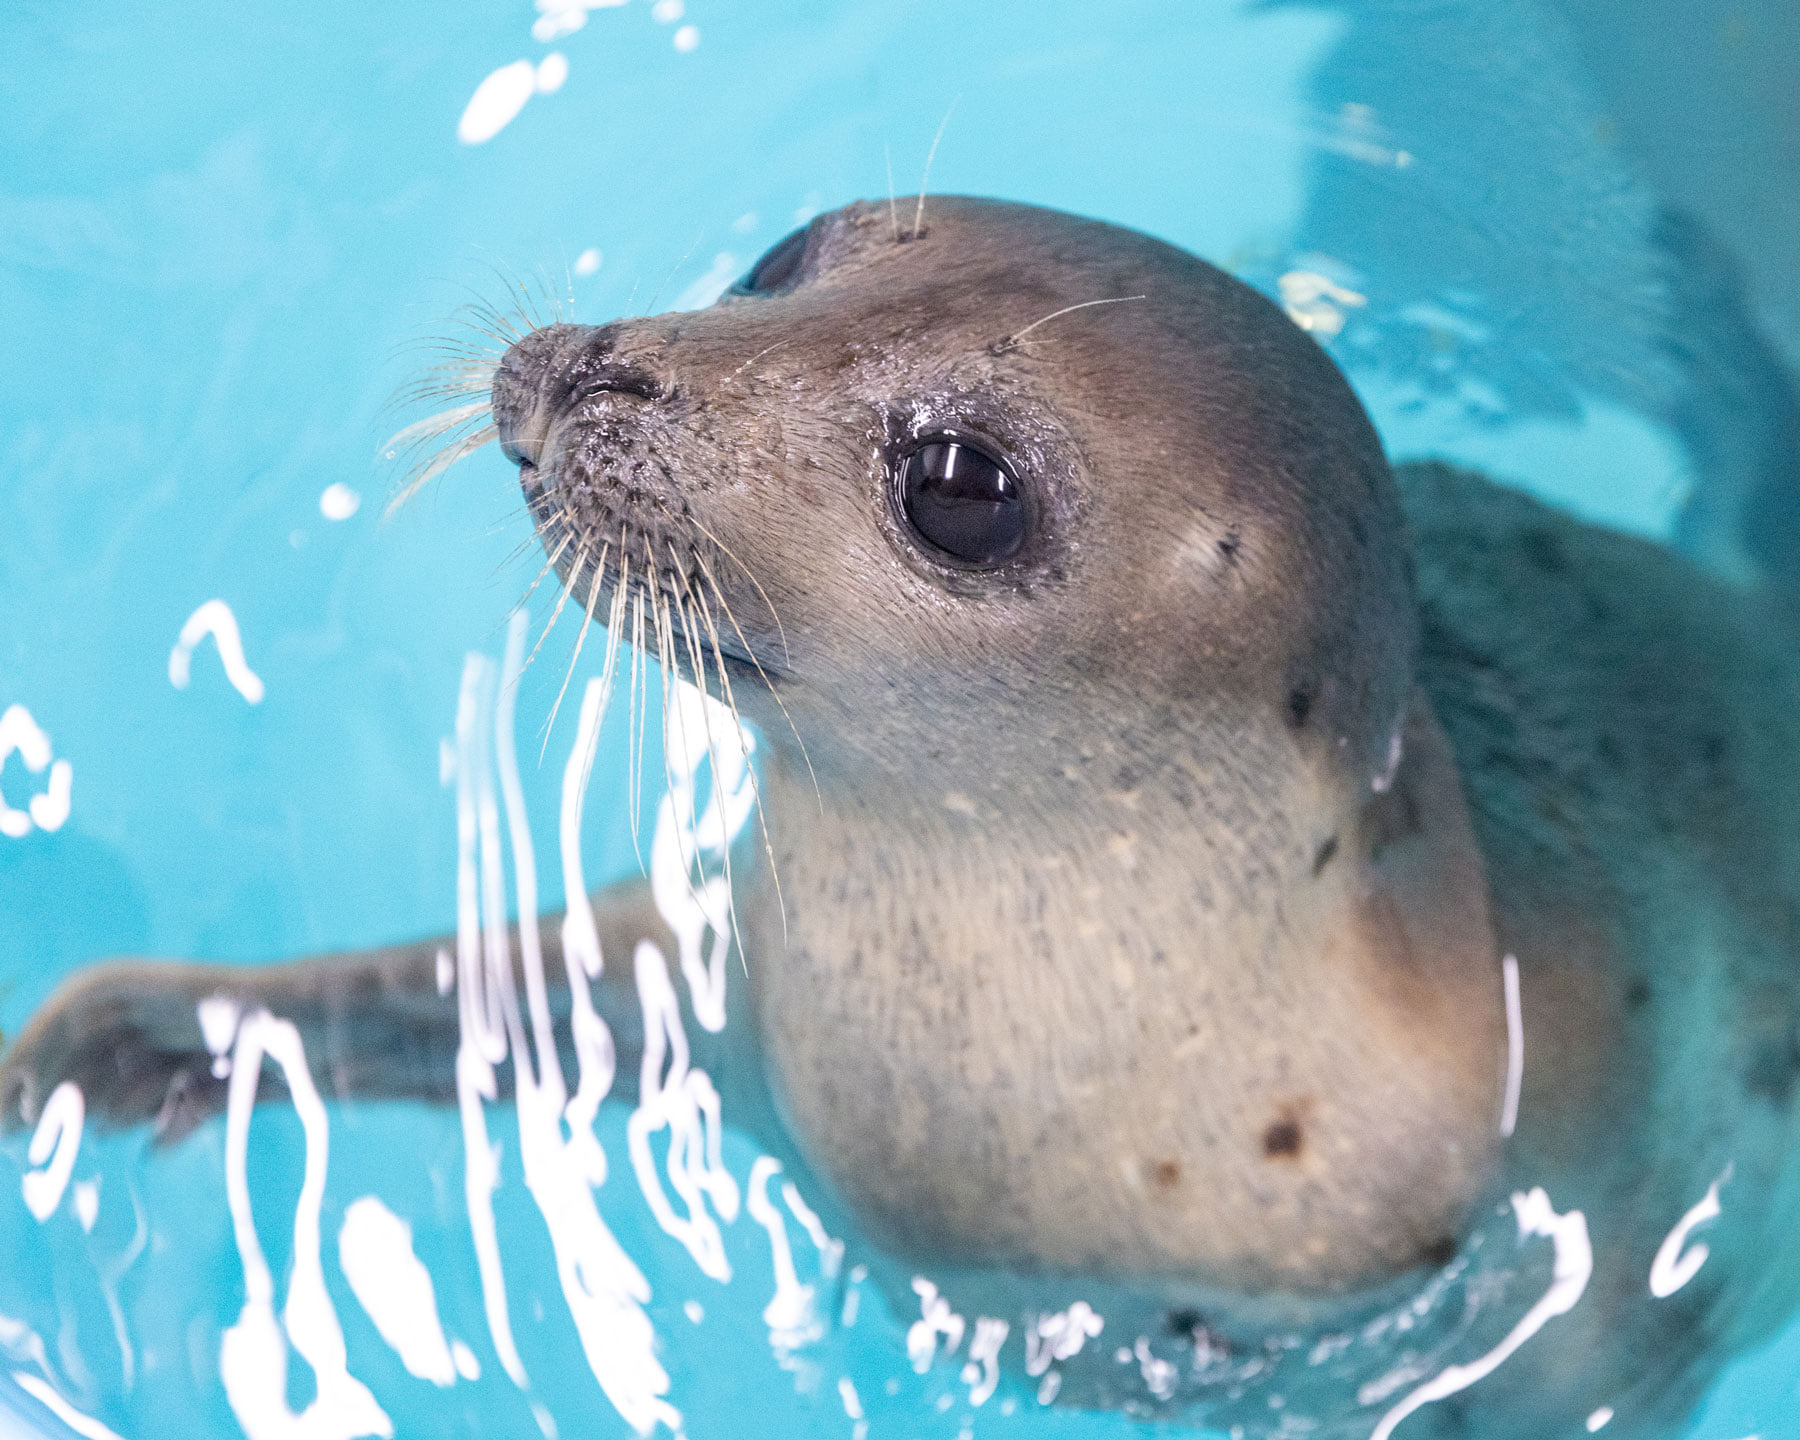 small seal looks up from water